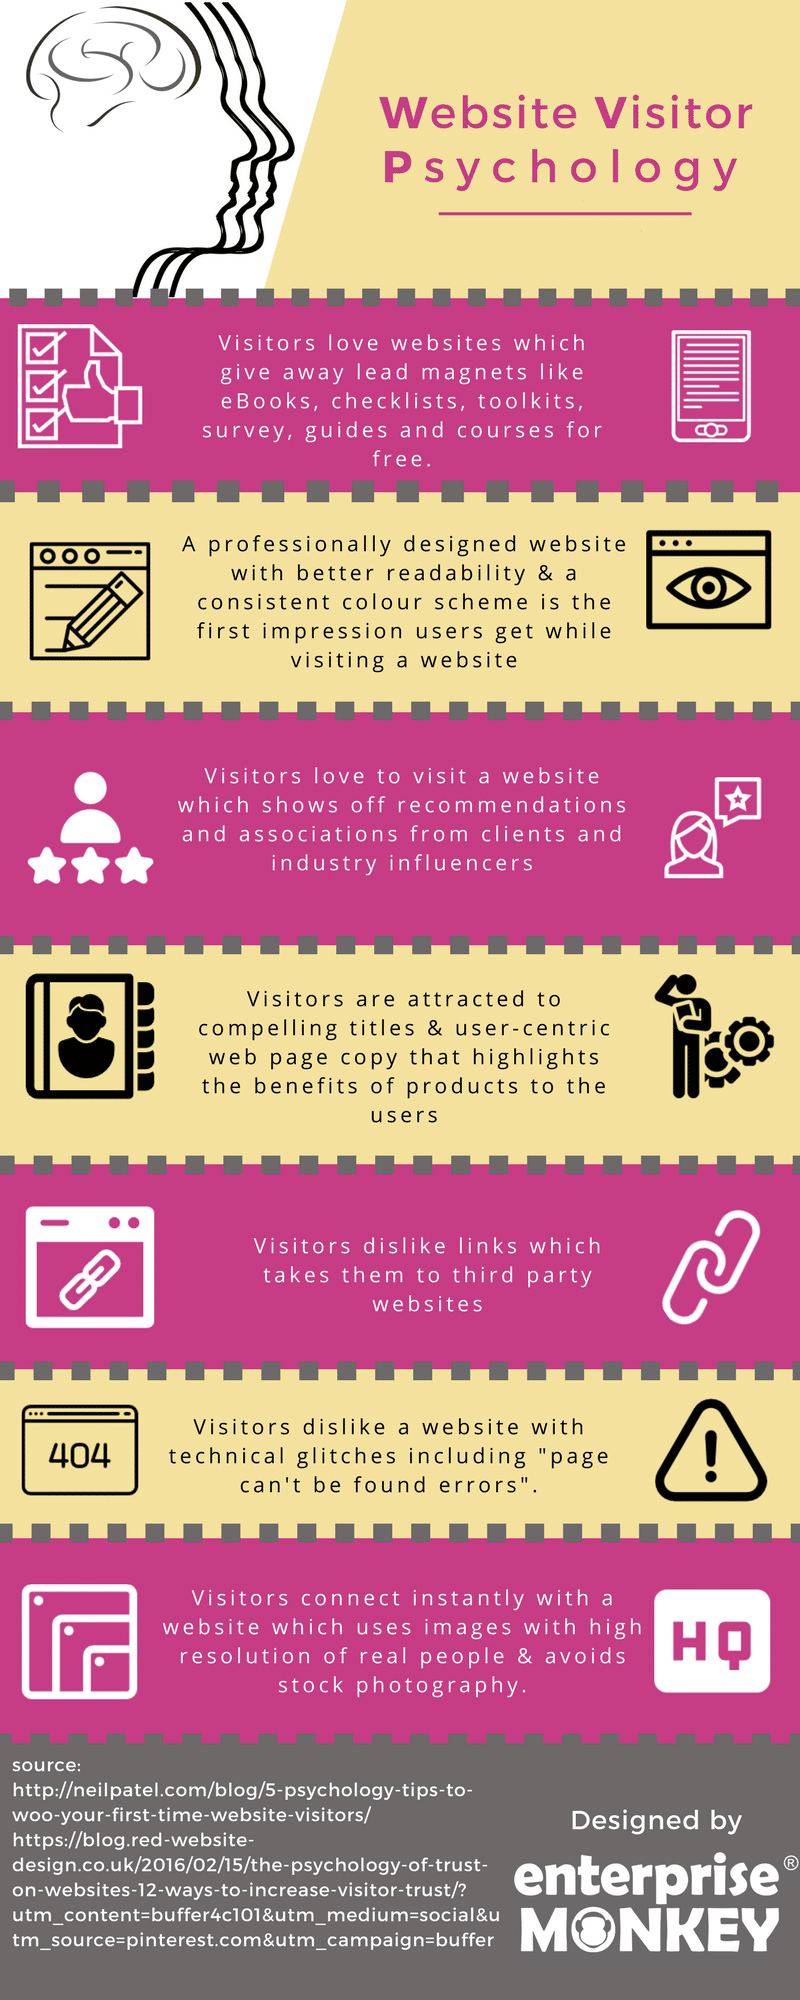 website visitor psychology infographic